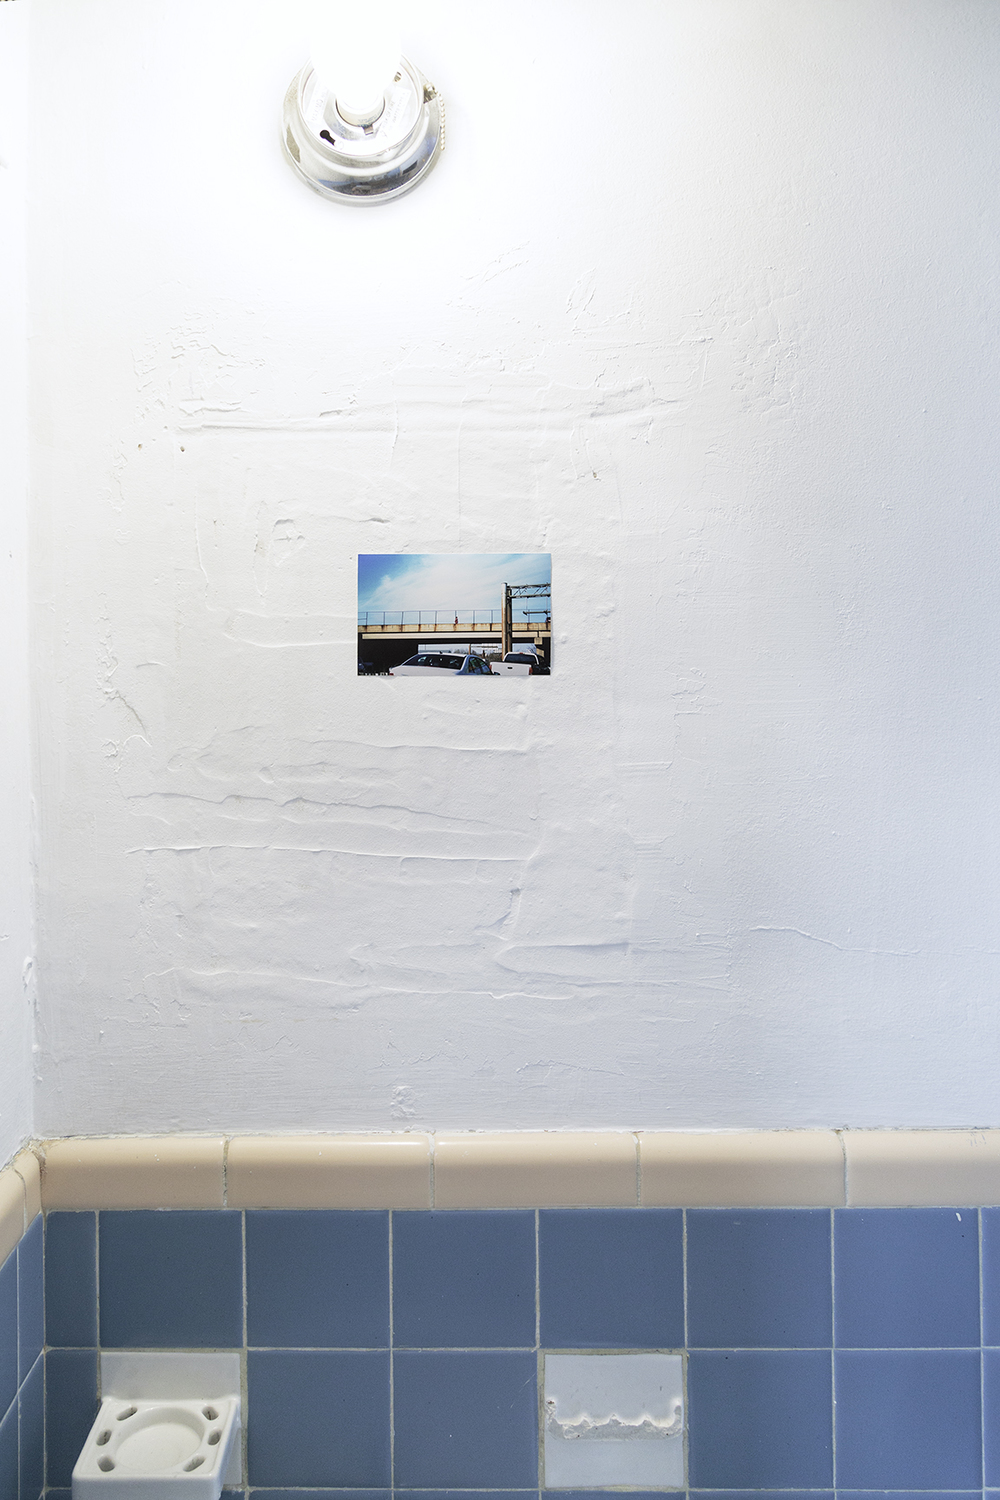 Installation view at Artist-Run Satellite Miami, Pool Rules, Fjord Gallery collaborative installation  Excerpt from Unemployed, 2005-2015, inkjet prints